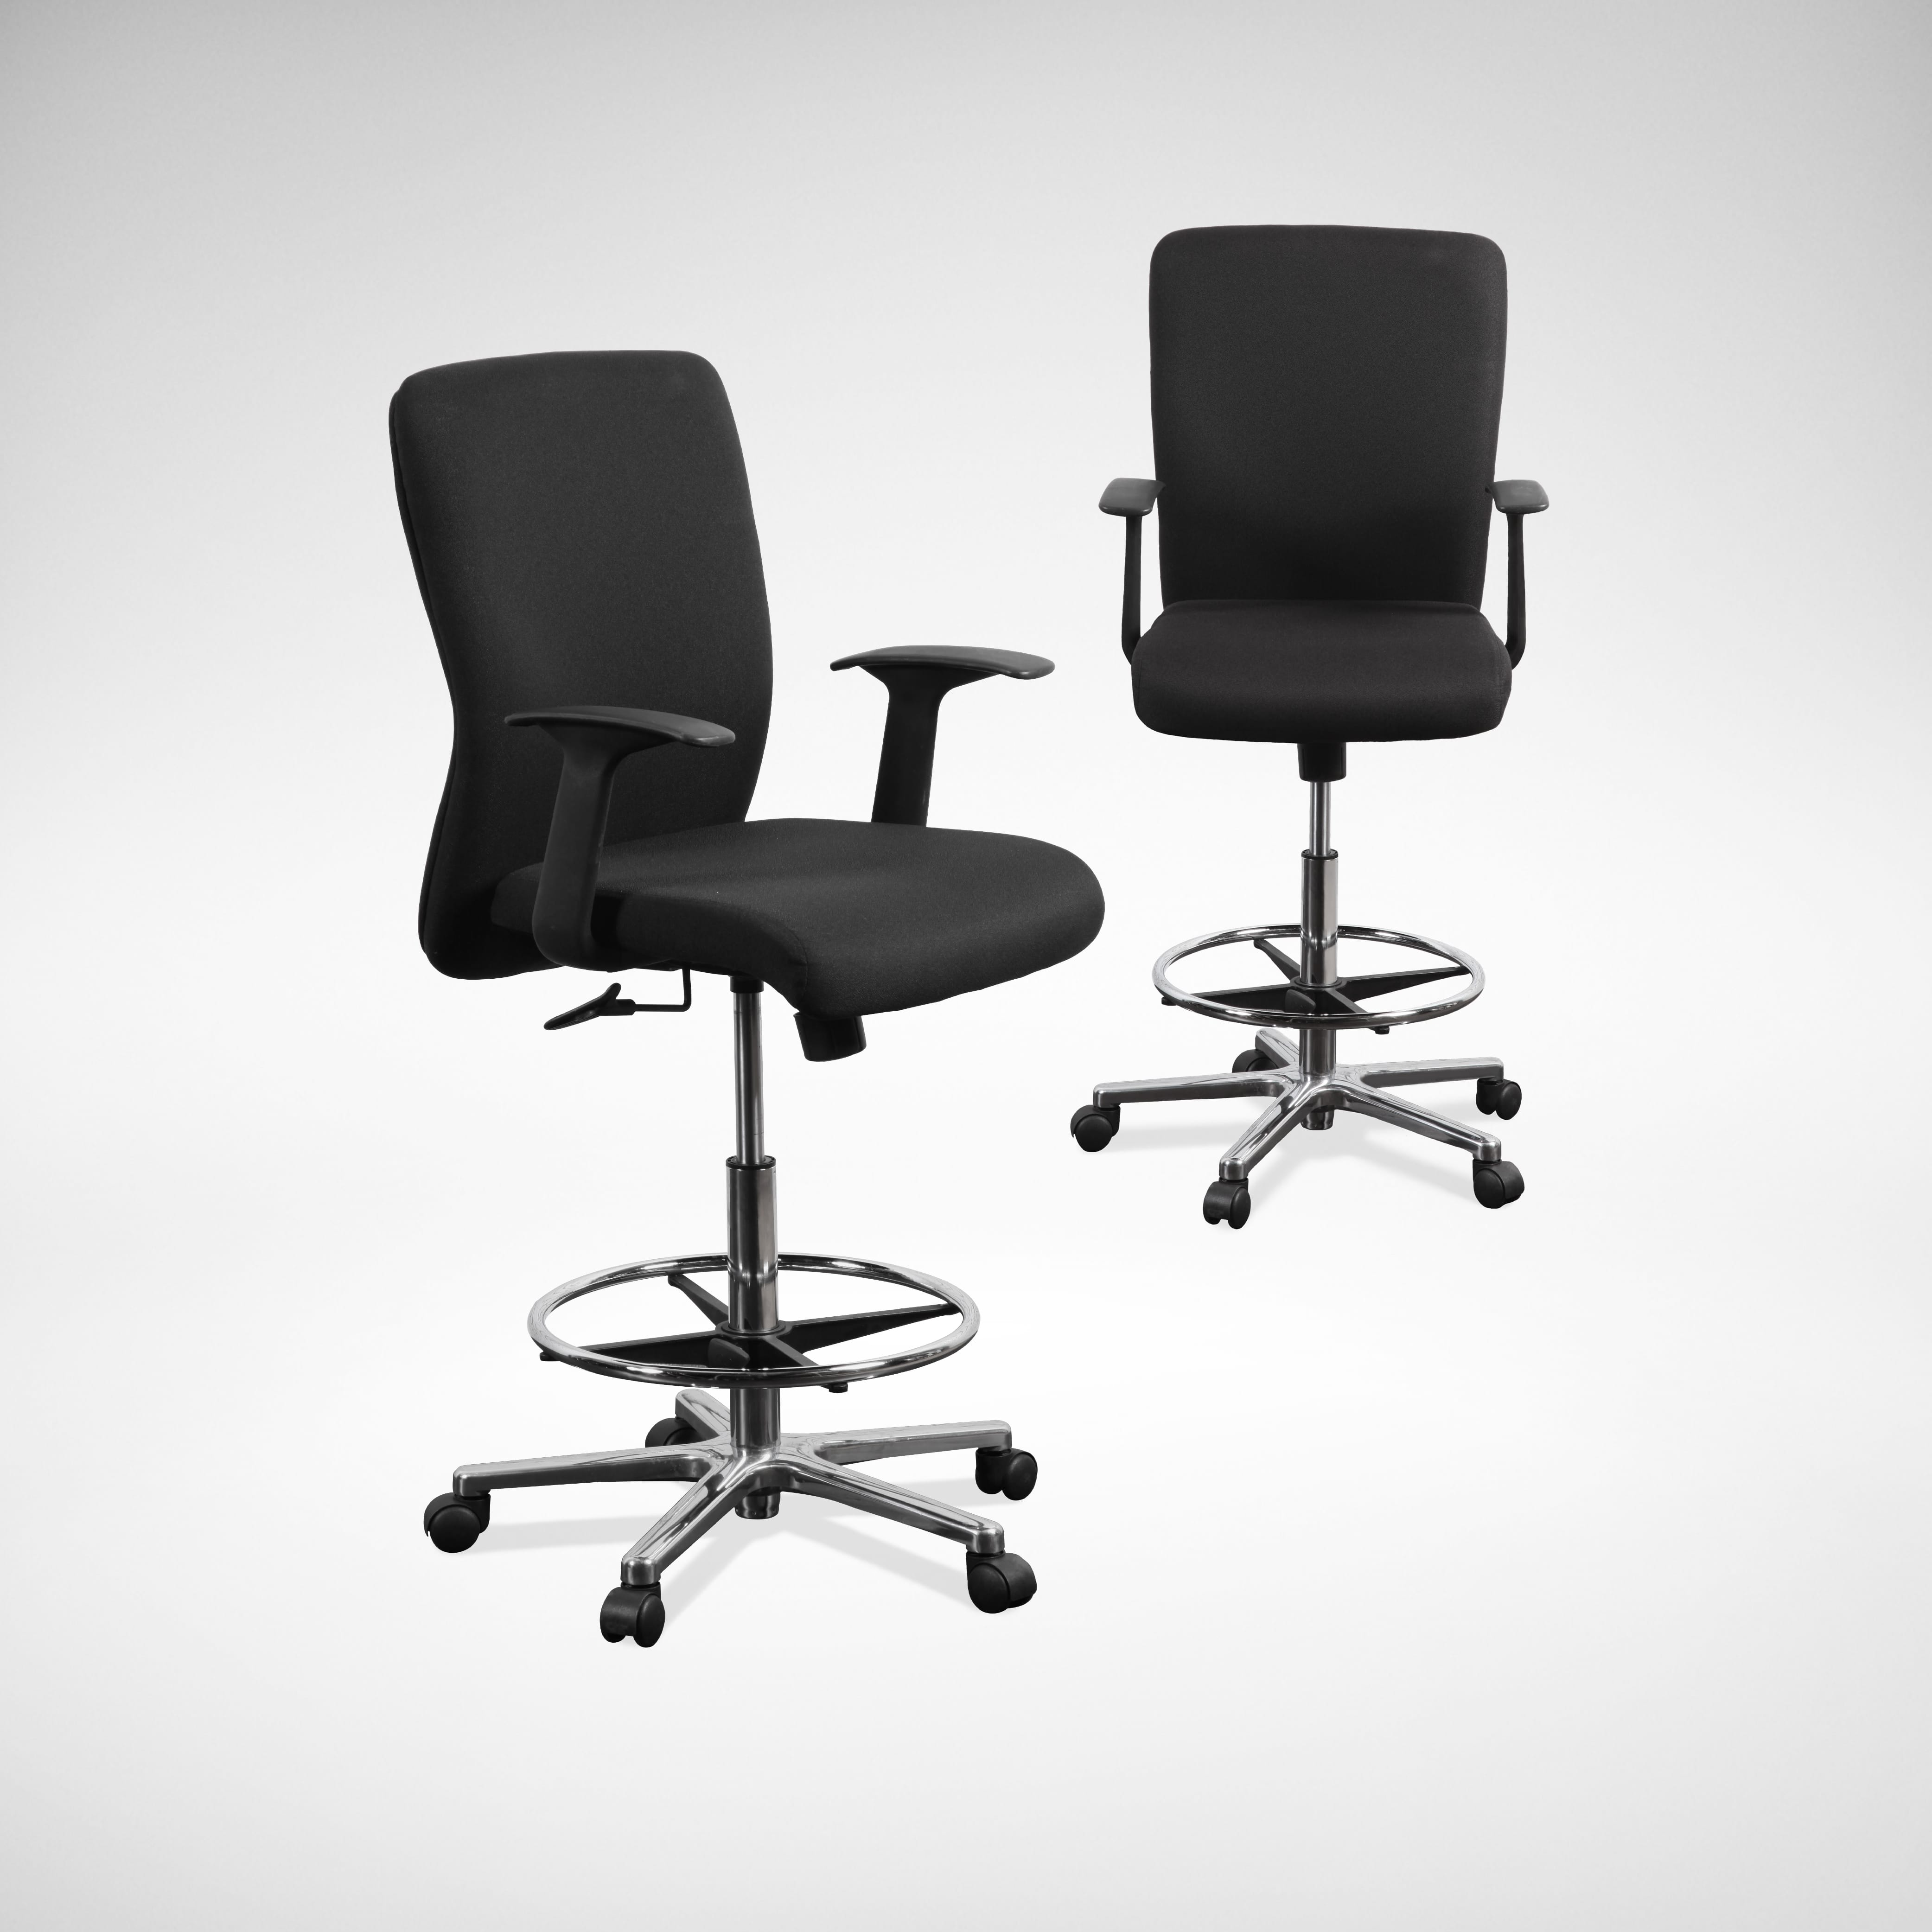 Fitch Midback Office Barchair Comfort Design The Chair